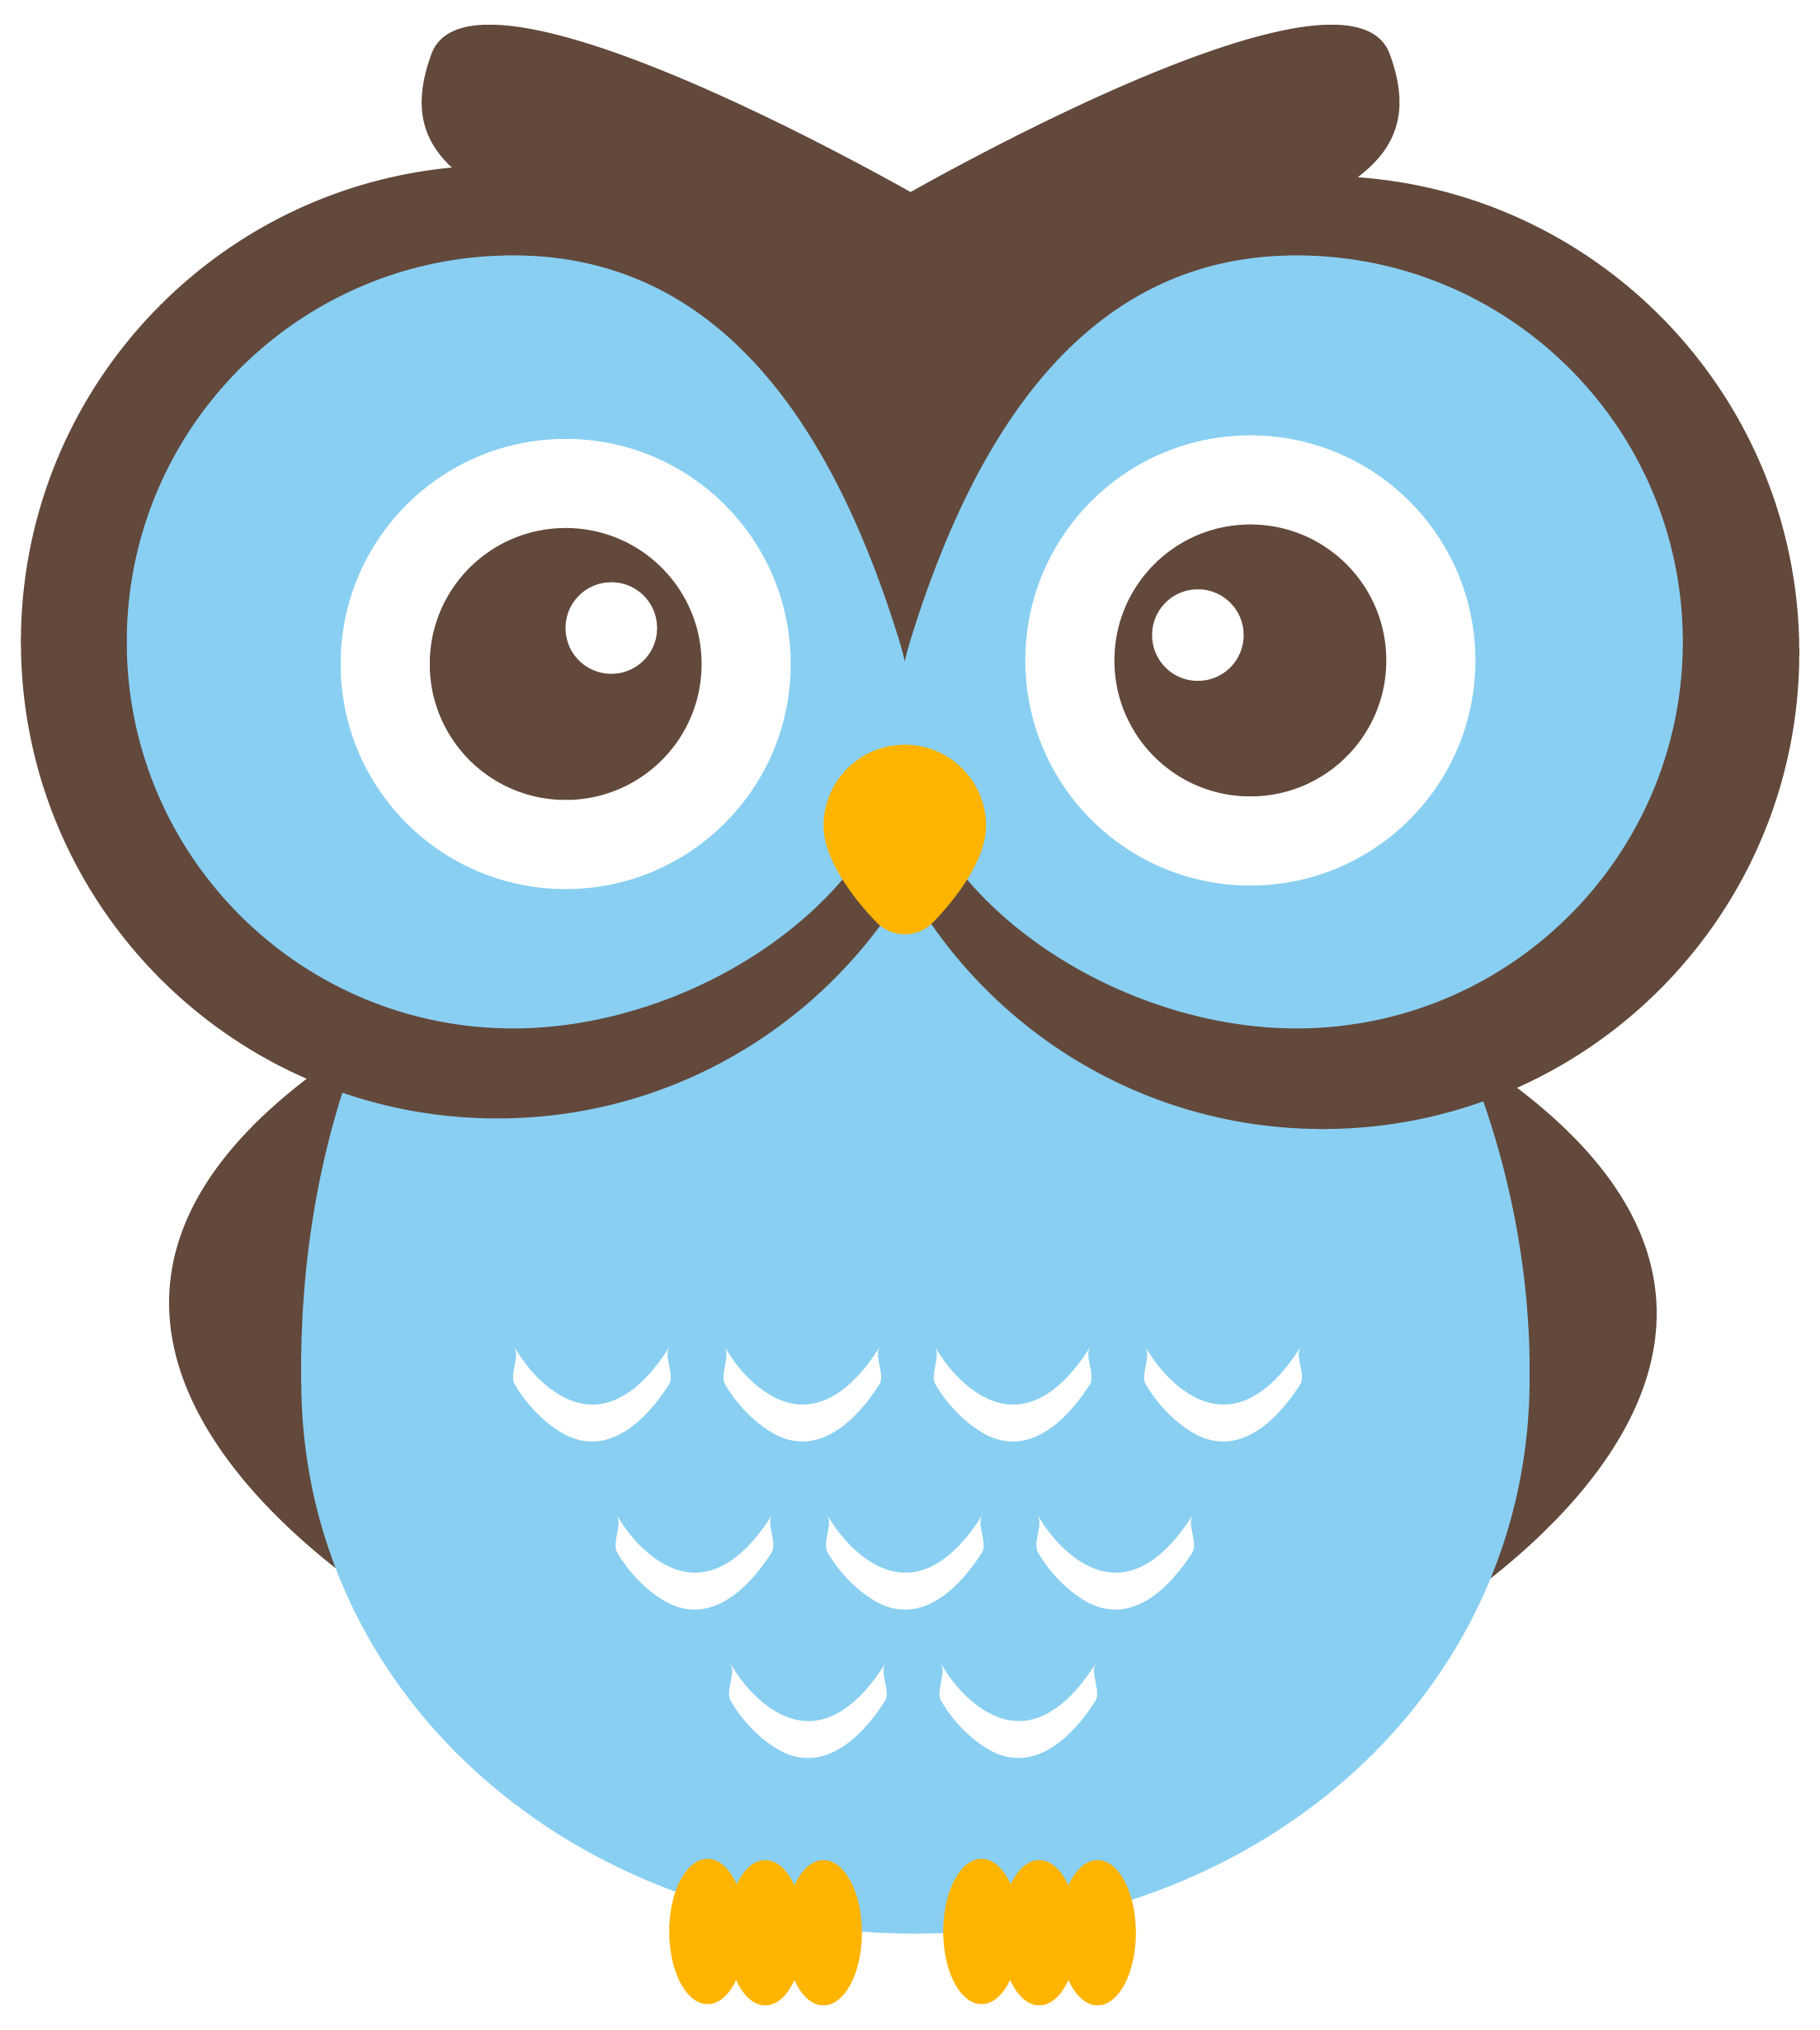 Owlet clipart #11, Download drawings